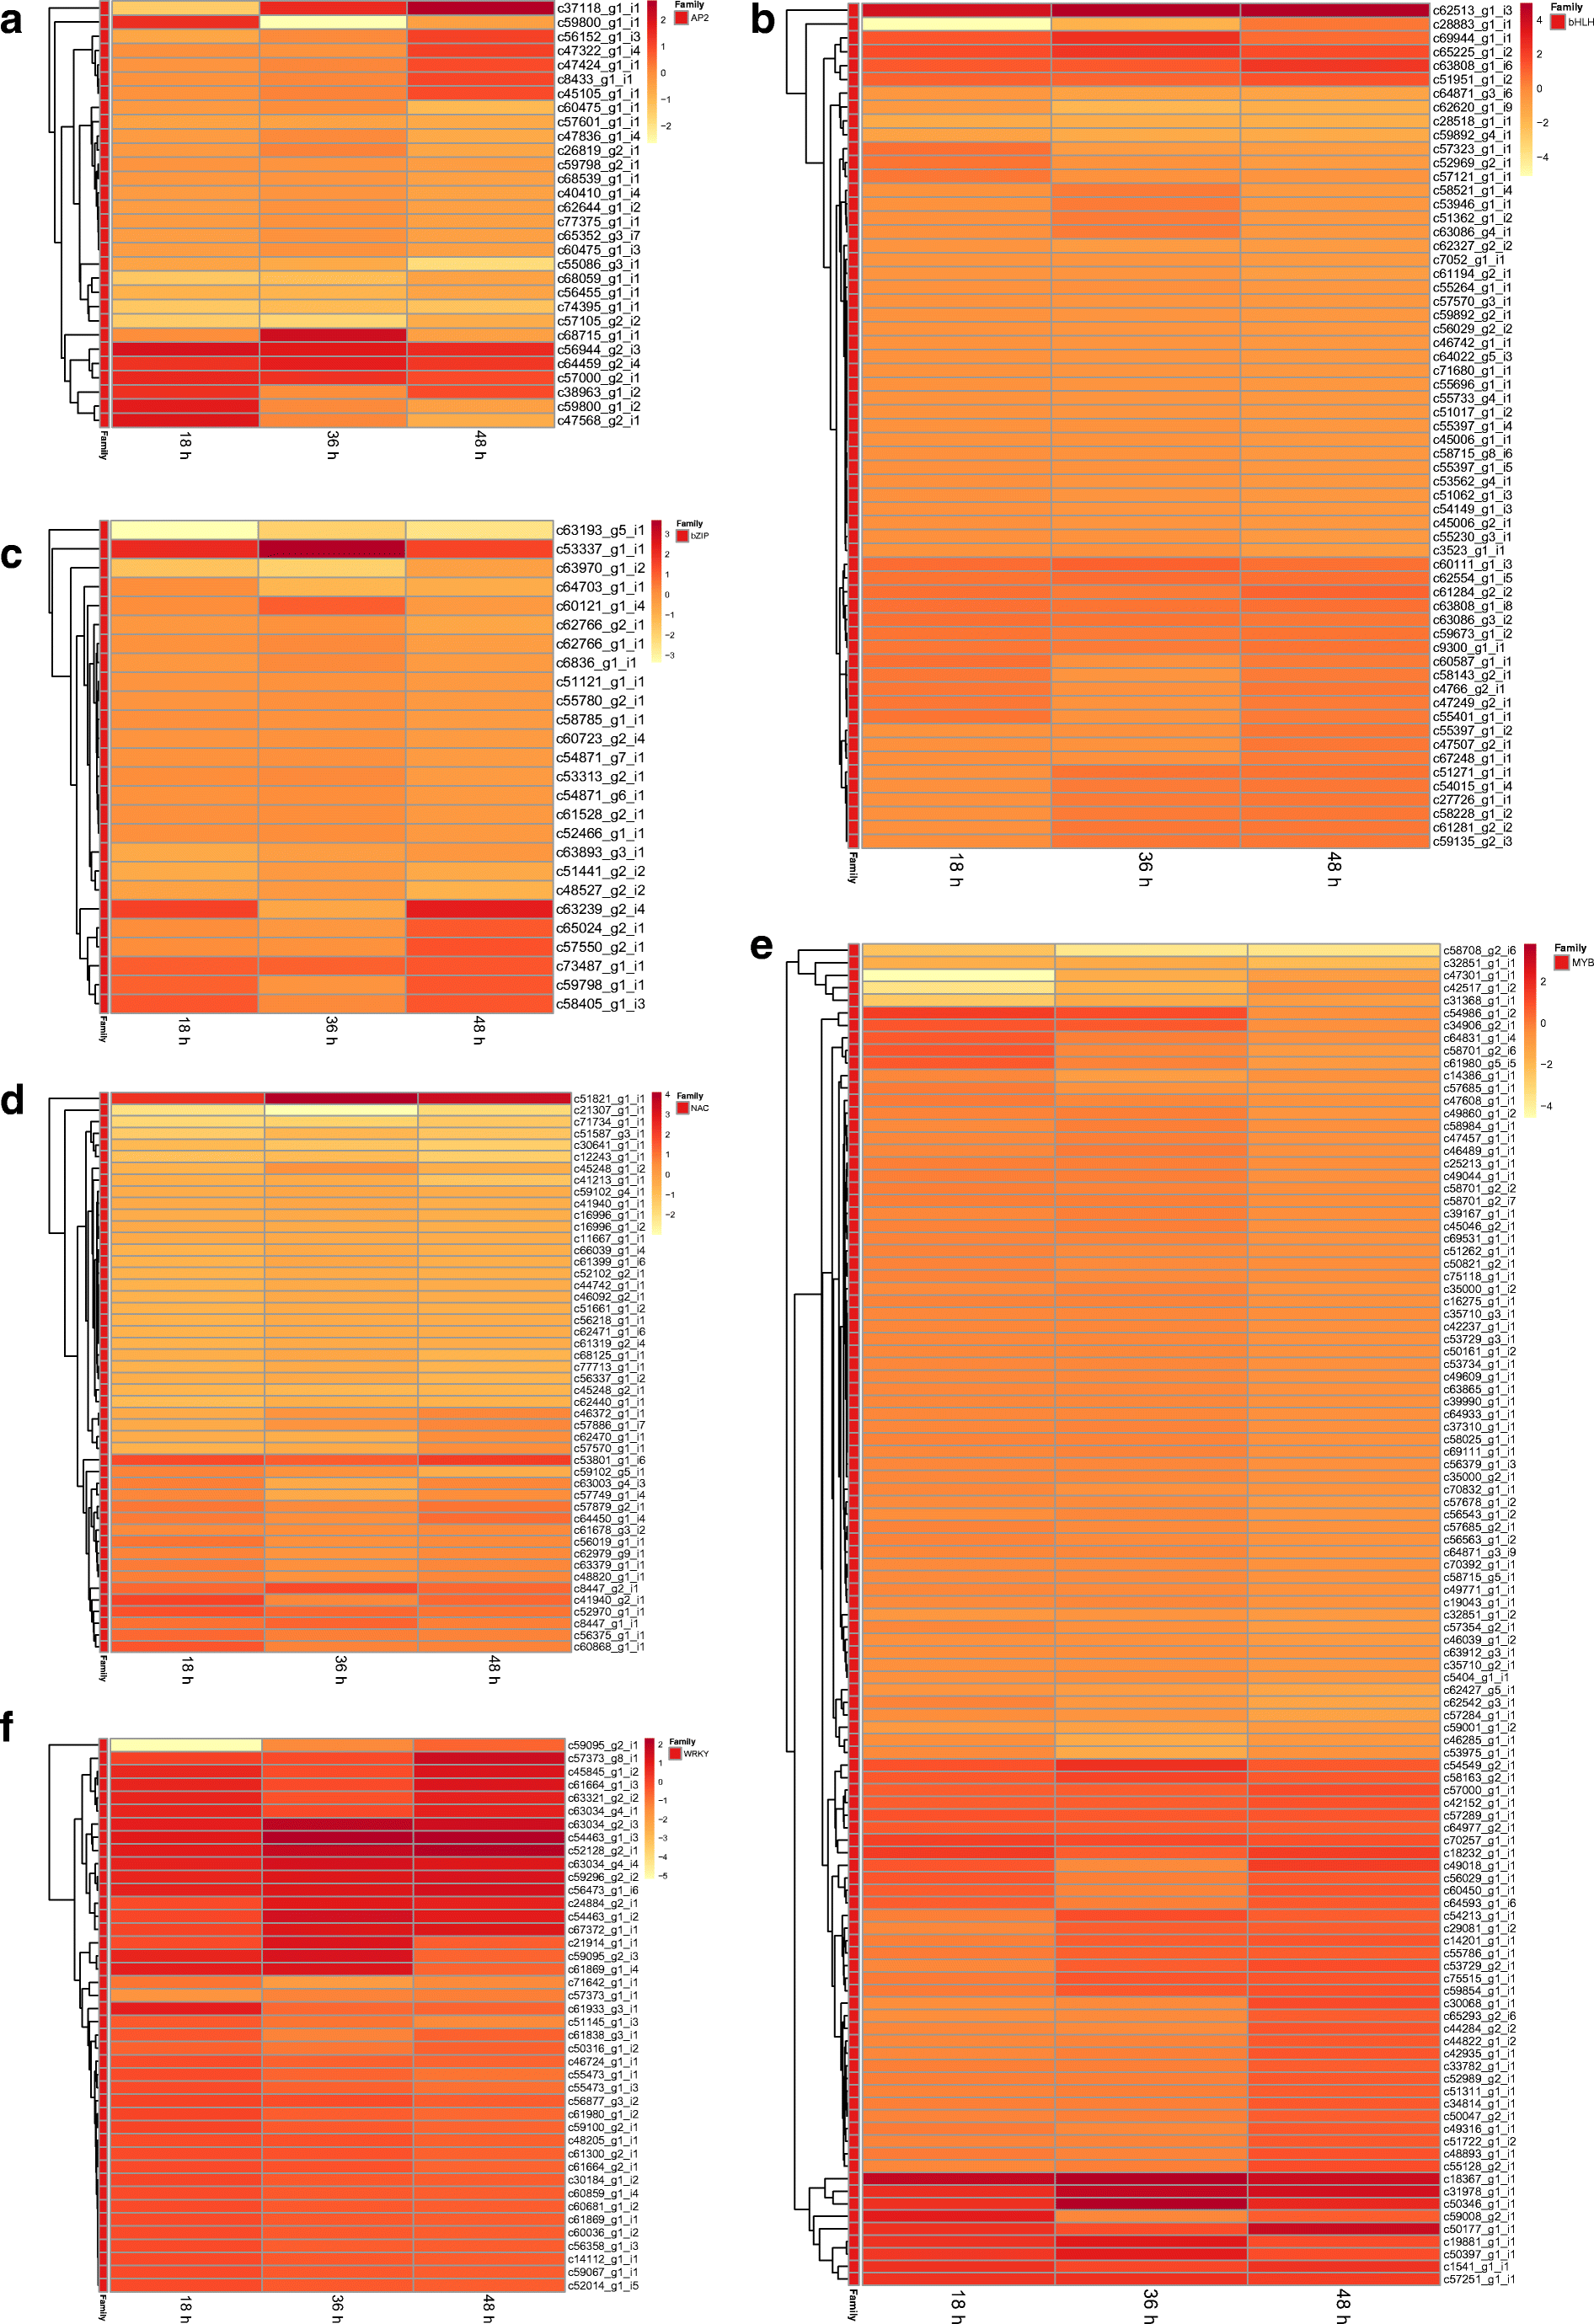 Transcriptome-based mining and expression profiling of